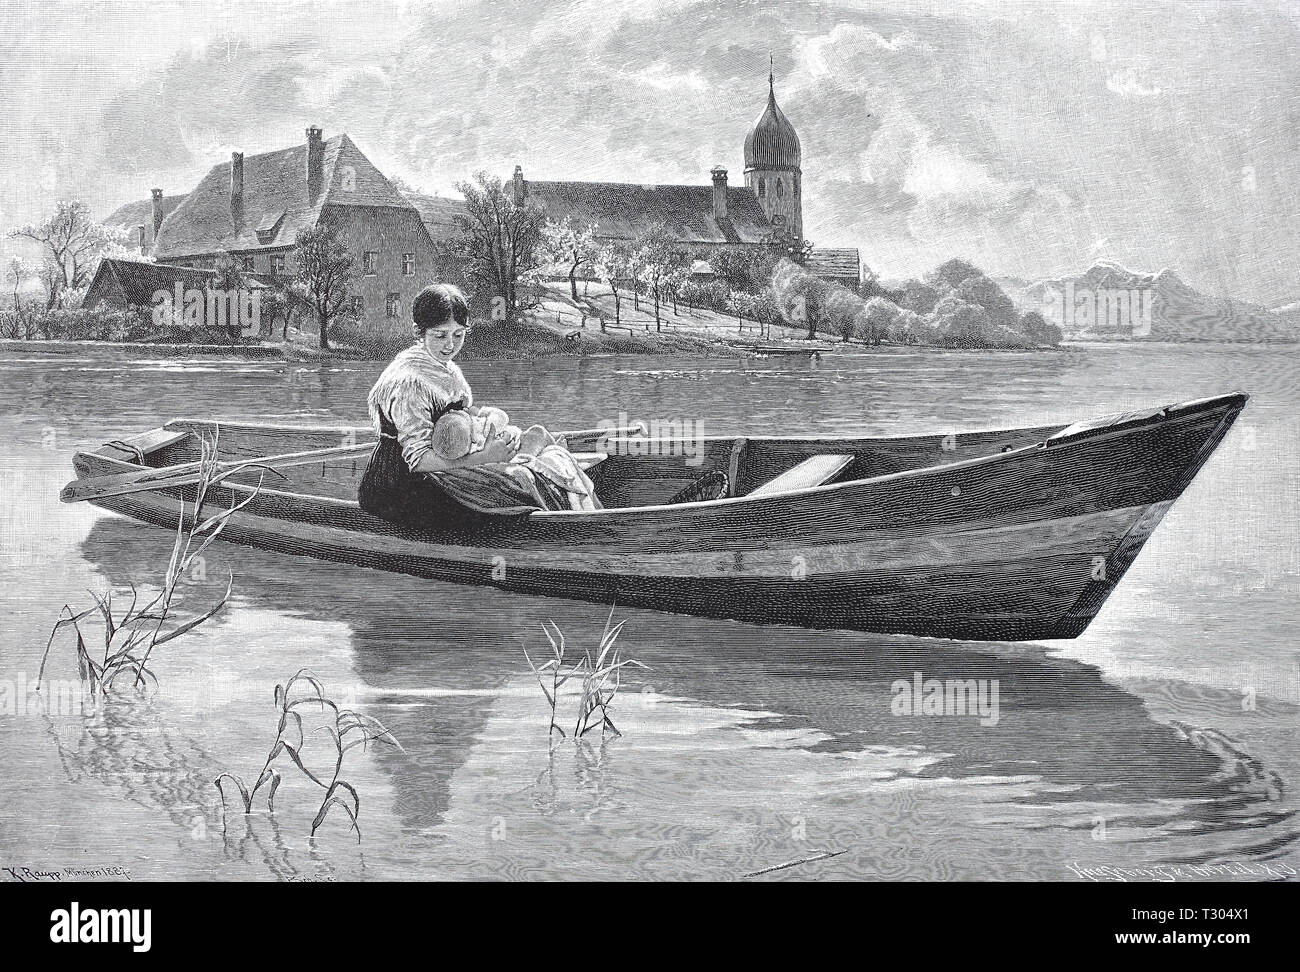 Digital improved reproduction, Peaceful mood in Lake Chiem, in a small boat sits a woman in the holiday dress and holds her baby in the arm, Friedliche Stimmung am Chiemsee, In einem Kahn sitzt eine Frau im Feiertagskleid und hält ihr Baby im Arm, from an original print from the 19th century - Stock Image